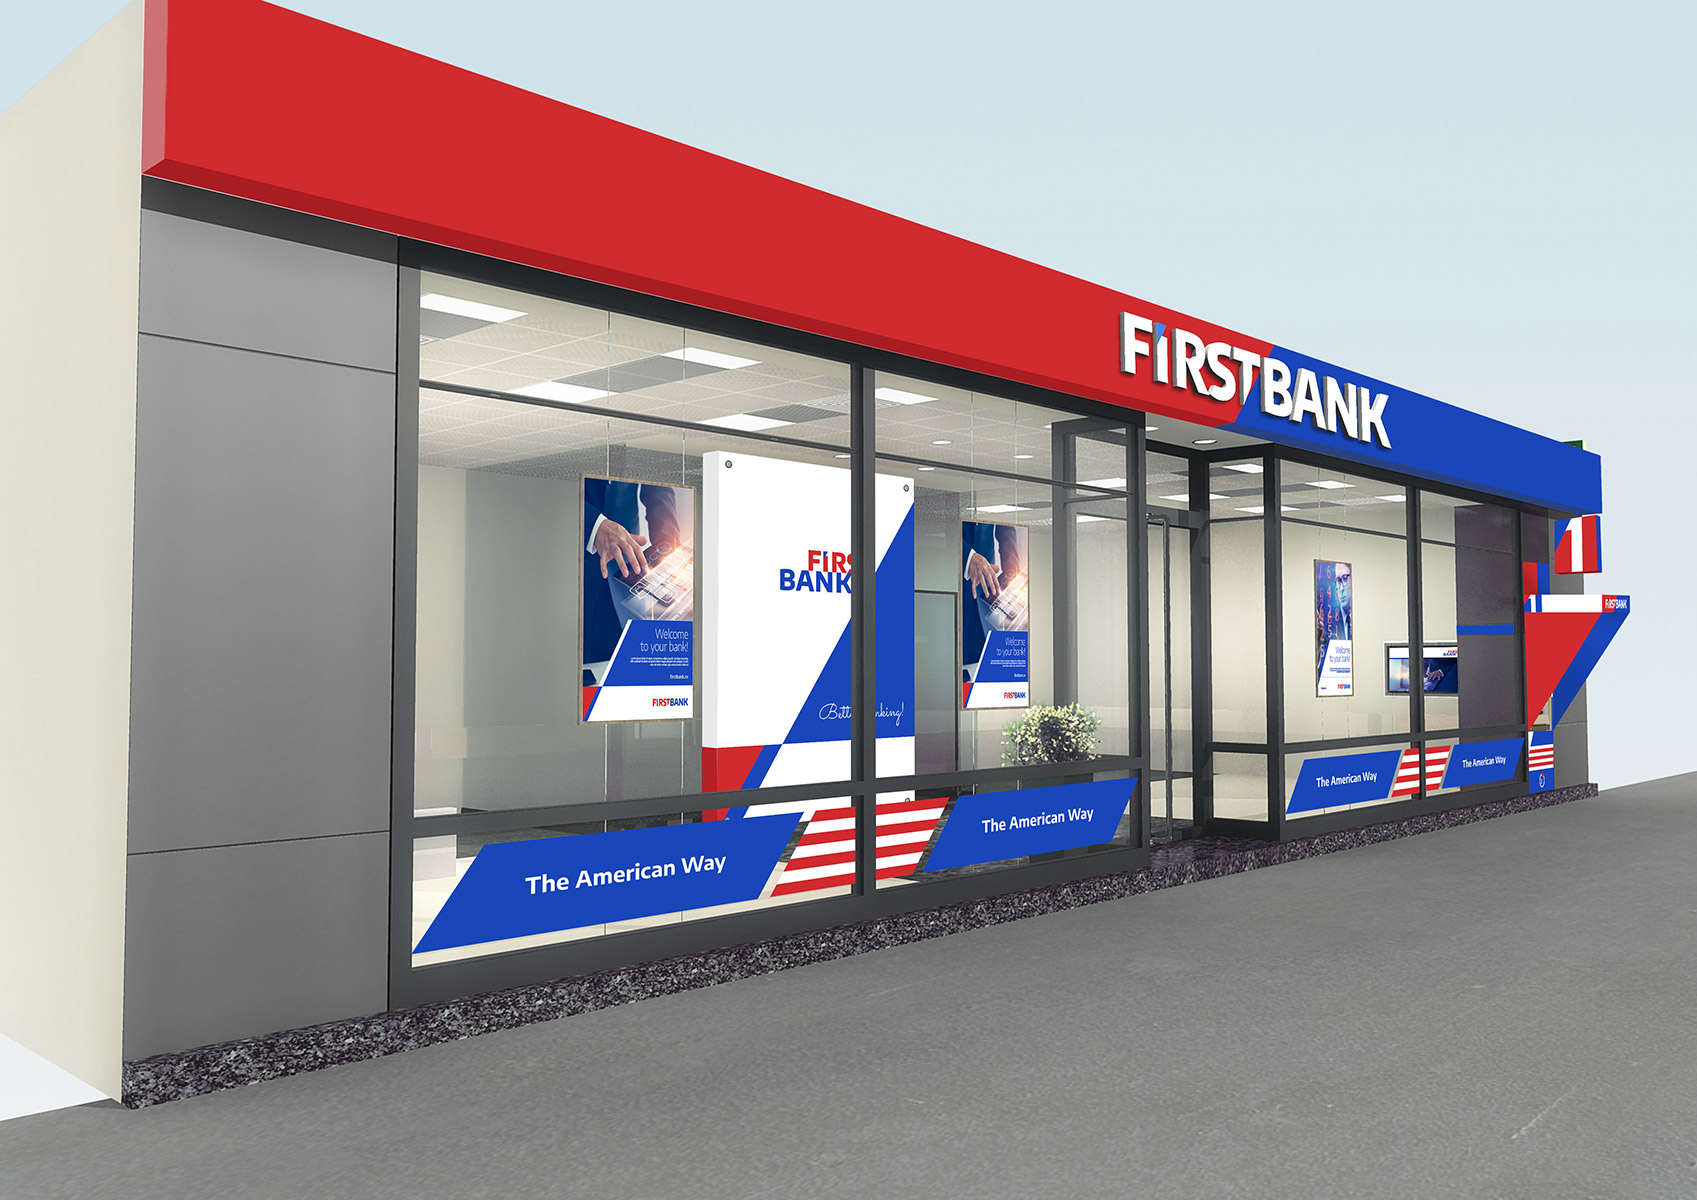 first bank portofoliu inoveo fatada